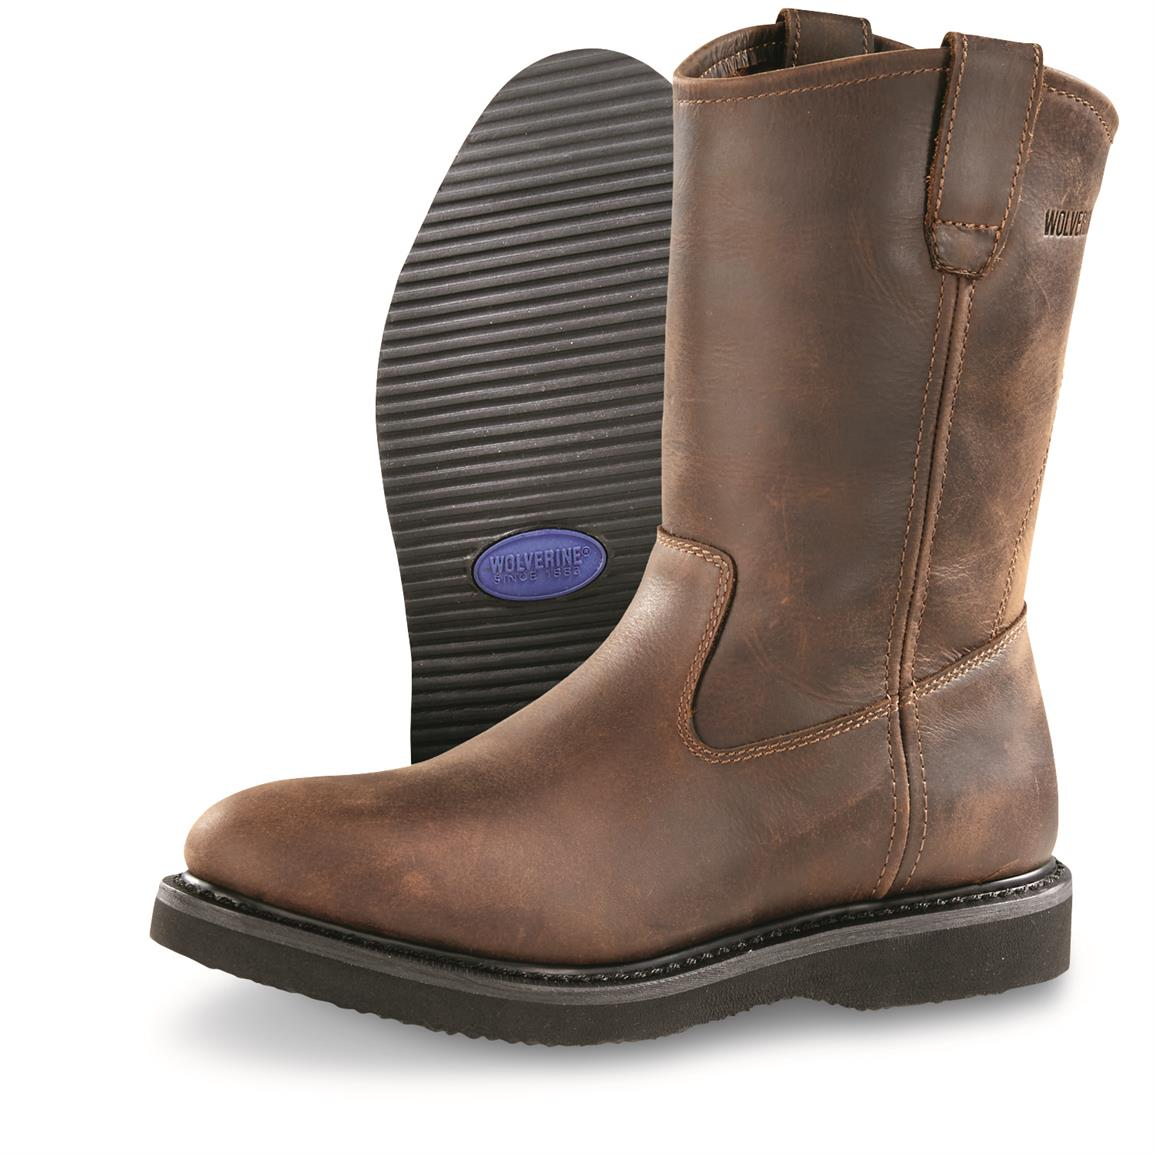 Buy Comfortable Wellington Boots to look fashionable